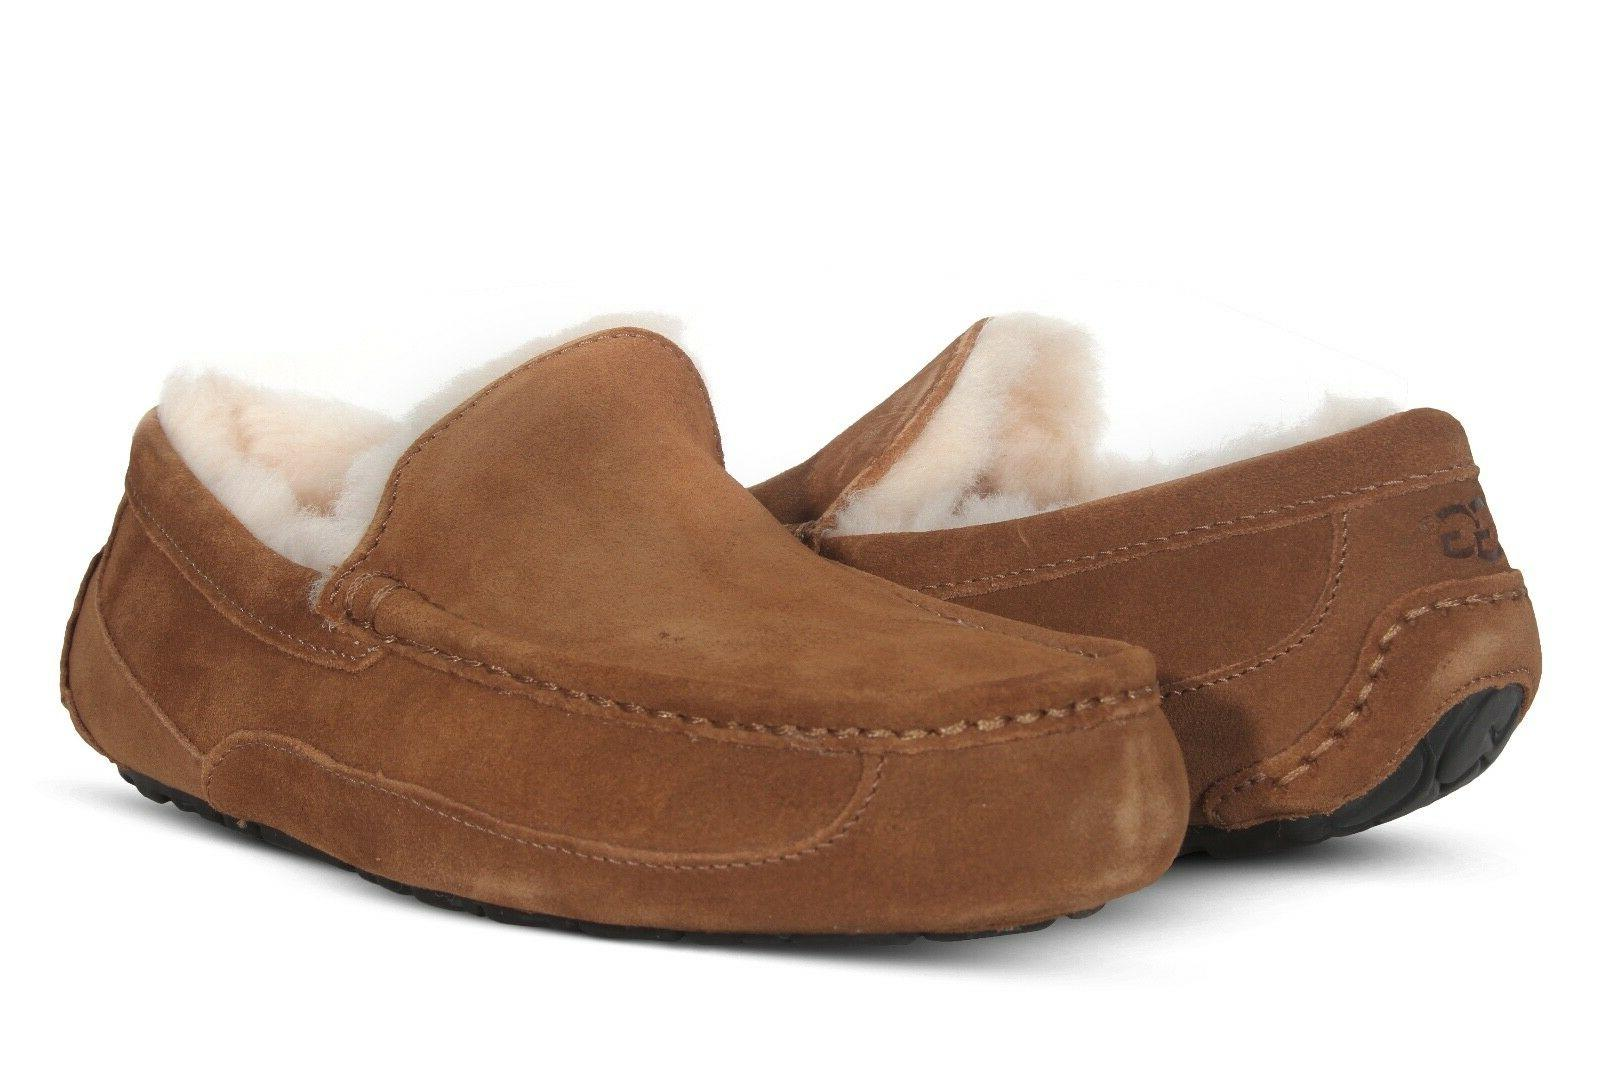 UGG Slippers Shoes Black Chestnut Grey